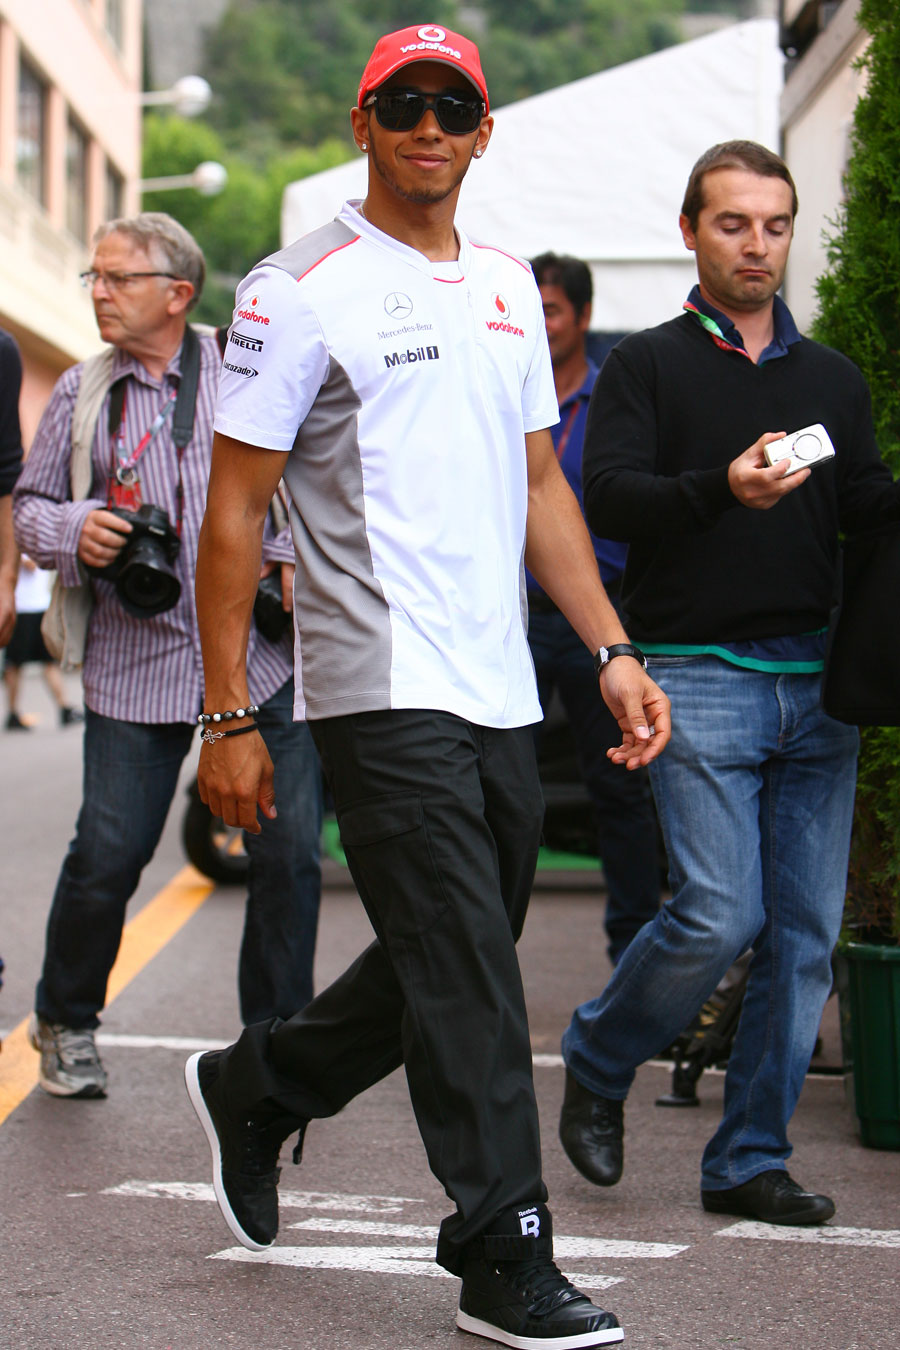 Lewis Hamilton walks through the Monte Carlo paddock